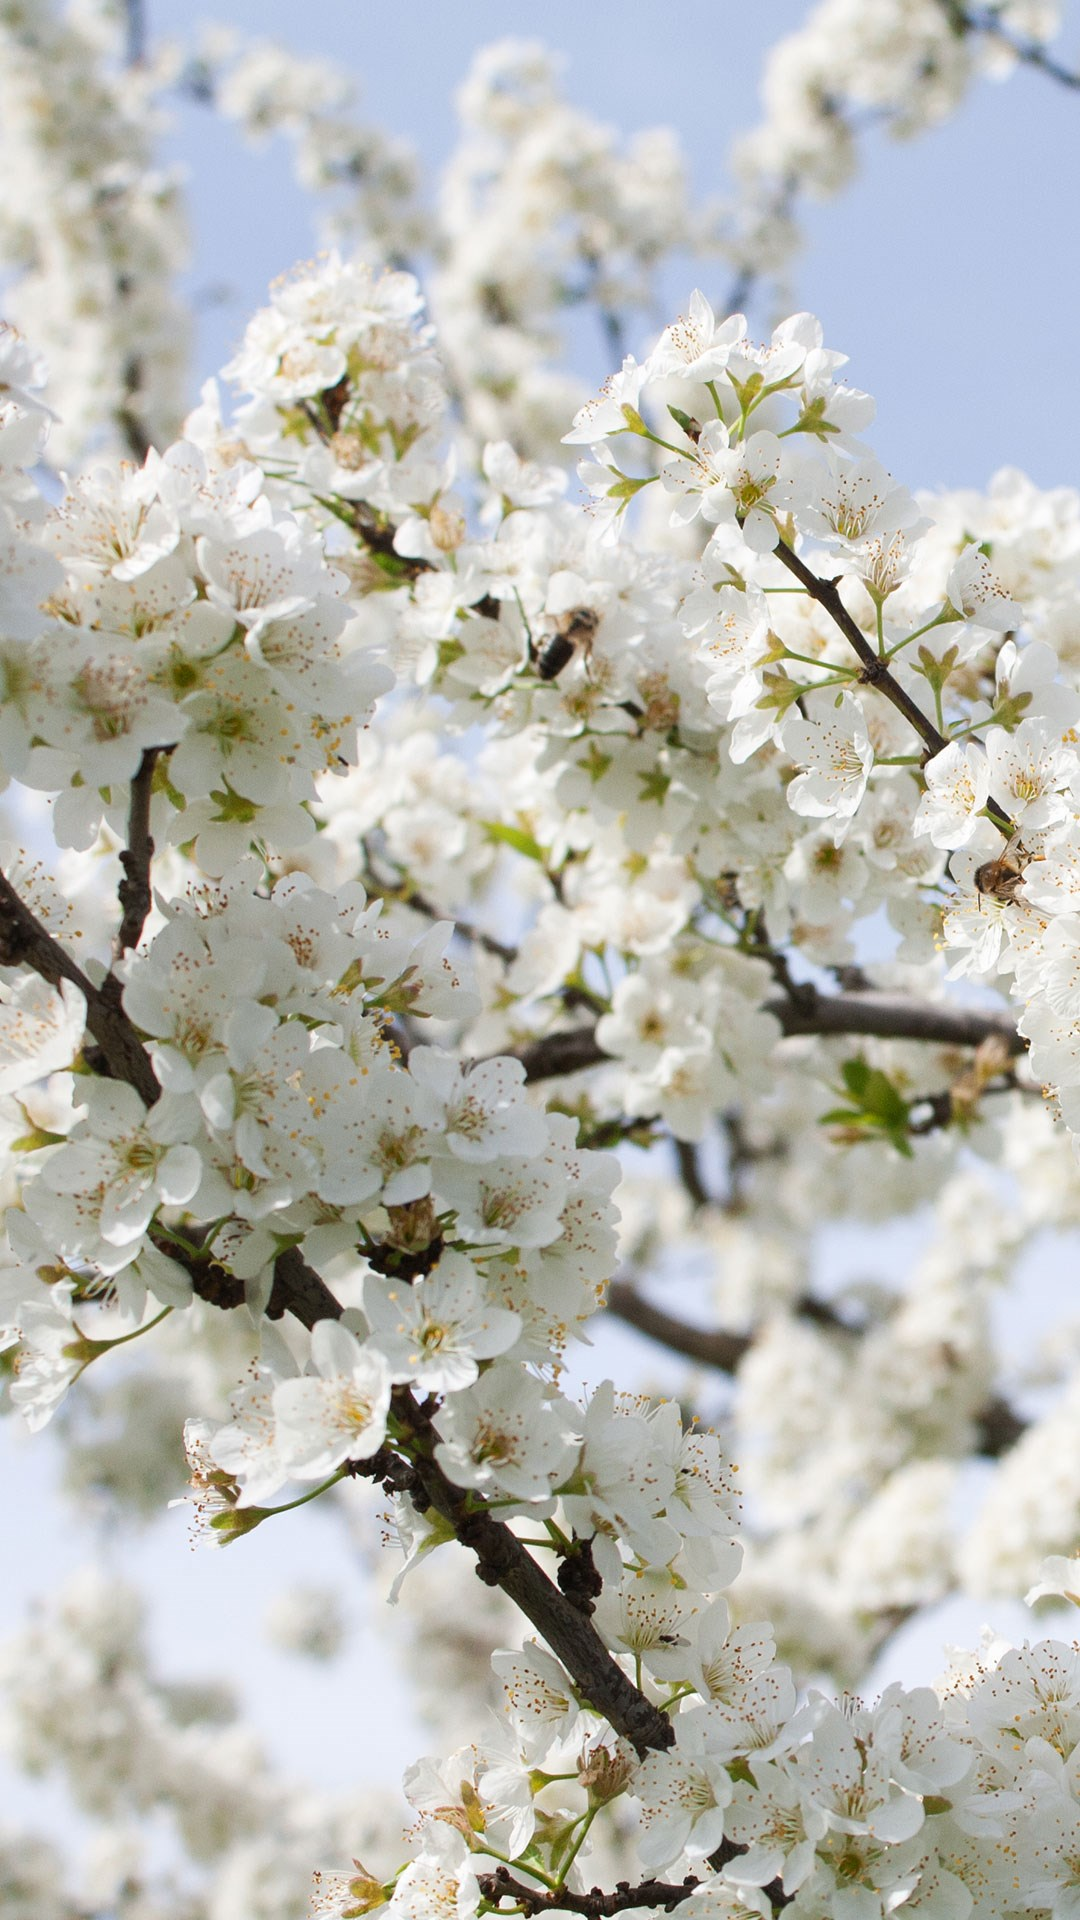 White blossom on a tree branch - portrait